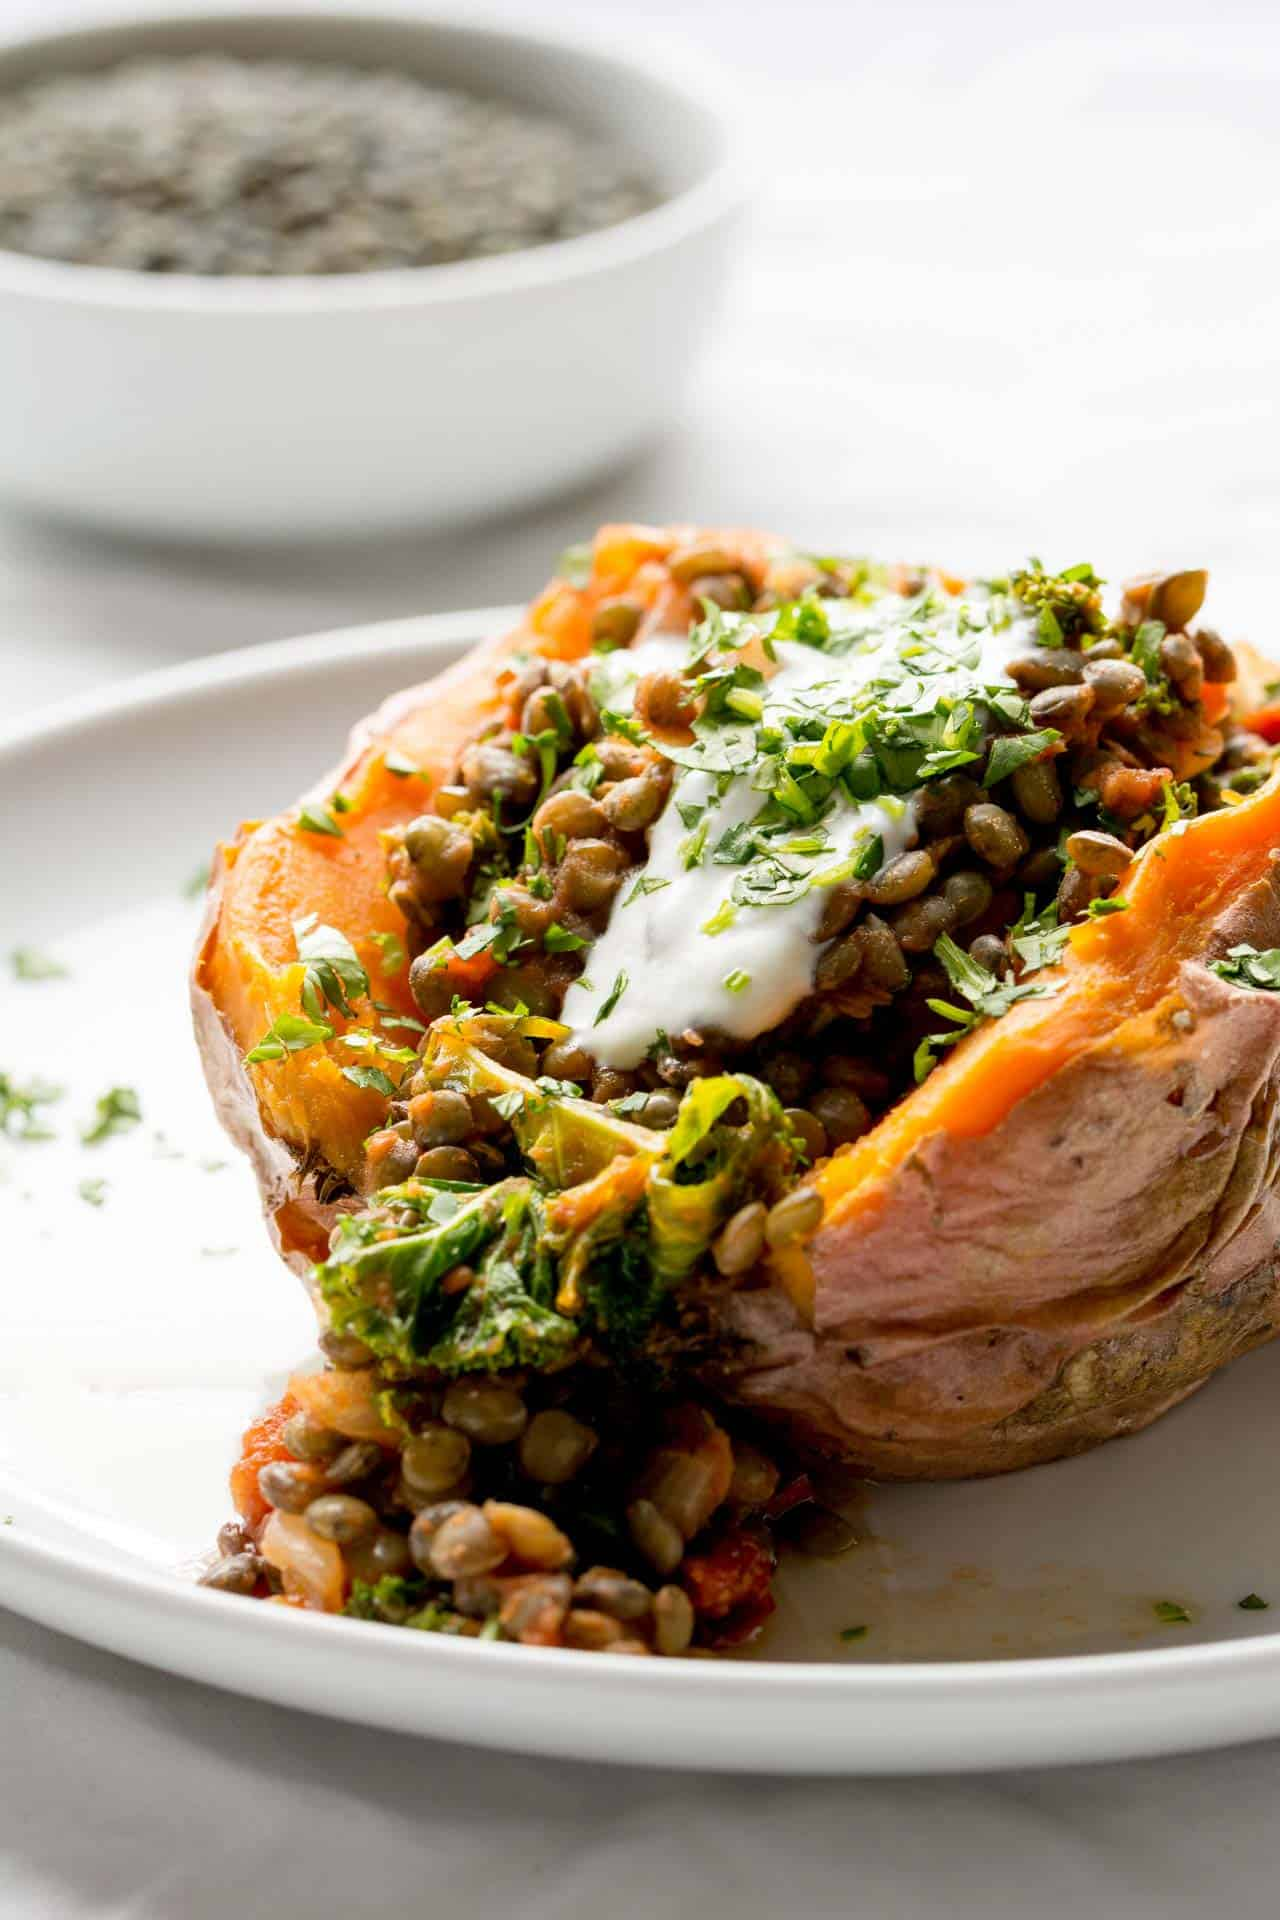 Stuffed sweet potatoes + 15 Farmers market recipes to make in December! Delicious, autumn, winter, and holiday recipes made with fresh, seasonal produce from your local farmers market or CSA bin. Eat local!